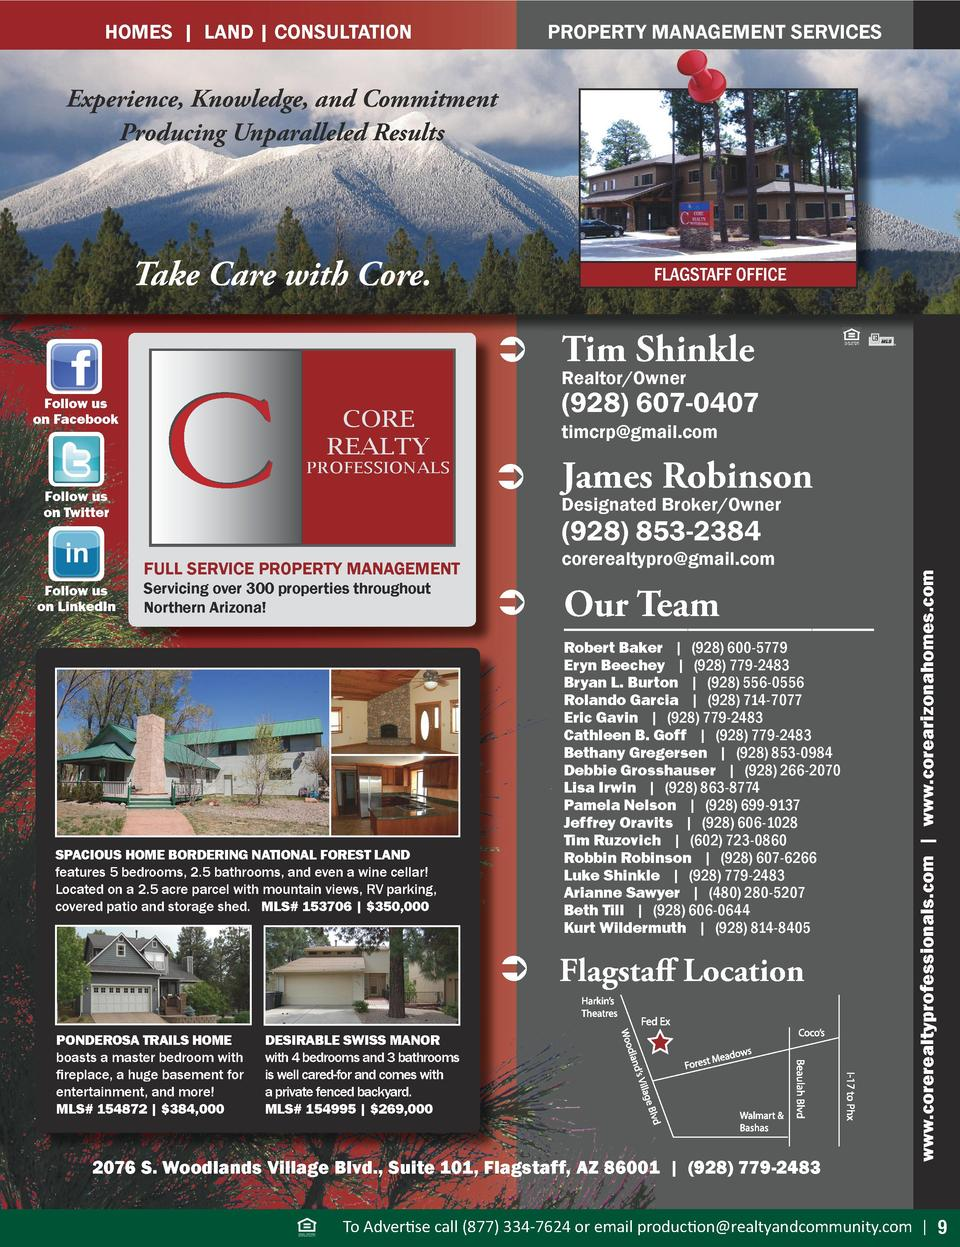 PROPERTY MANAGEMENT SERVICES  HOMES   LAND   CONSULTATION  Experience, Knowledge, and Commitment Producing Unparalleled Re...